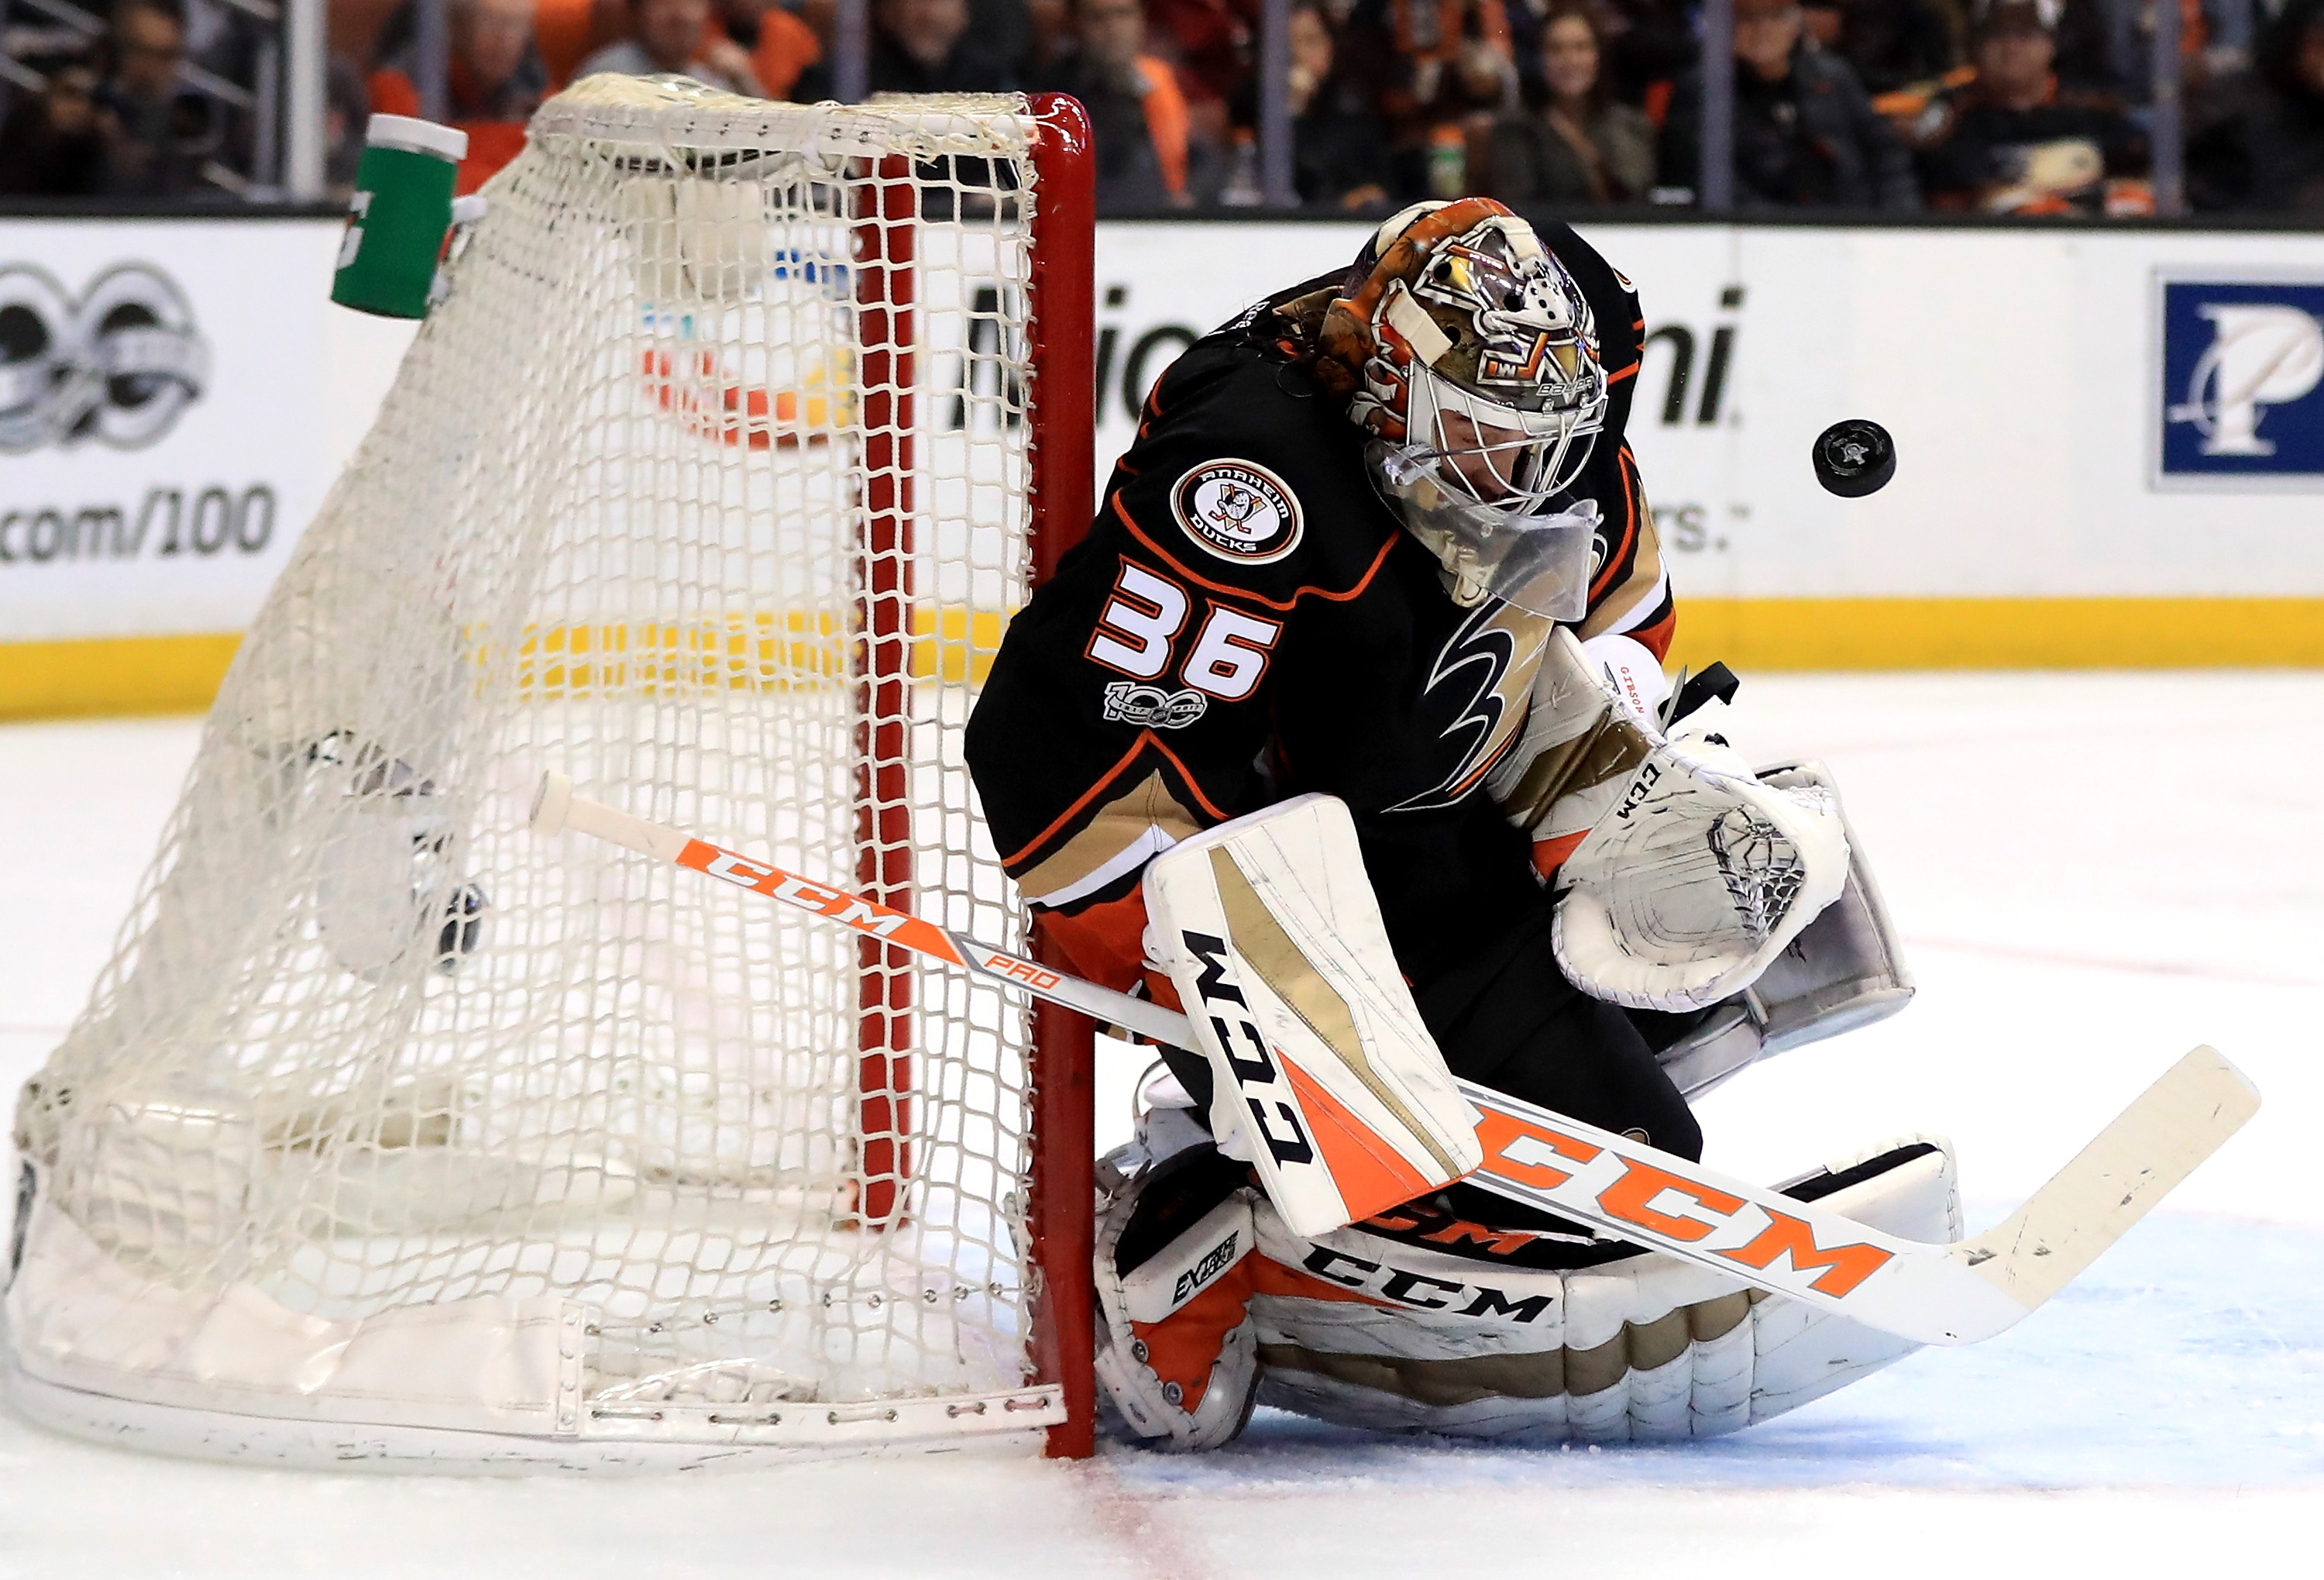 Ducks sweep away Flames with 3-1 win in Game 4